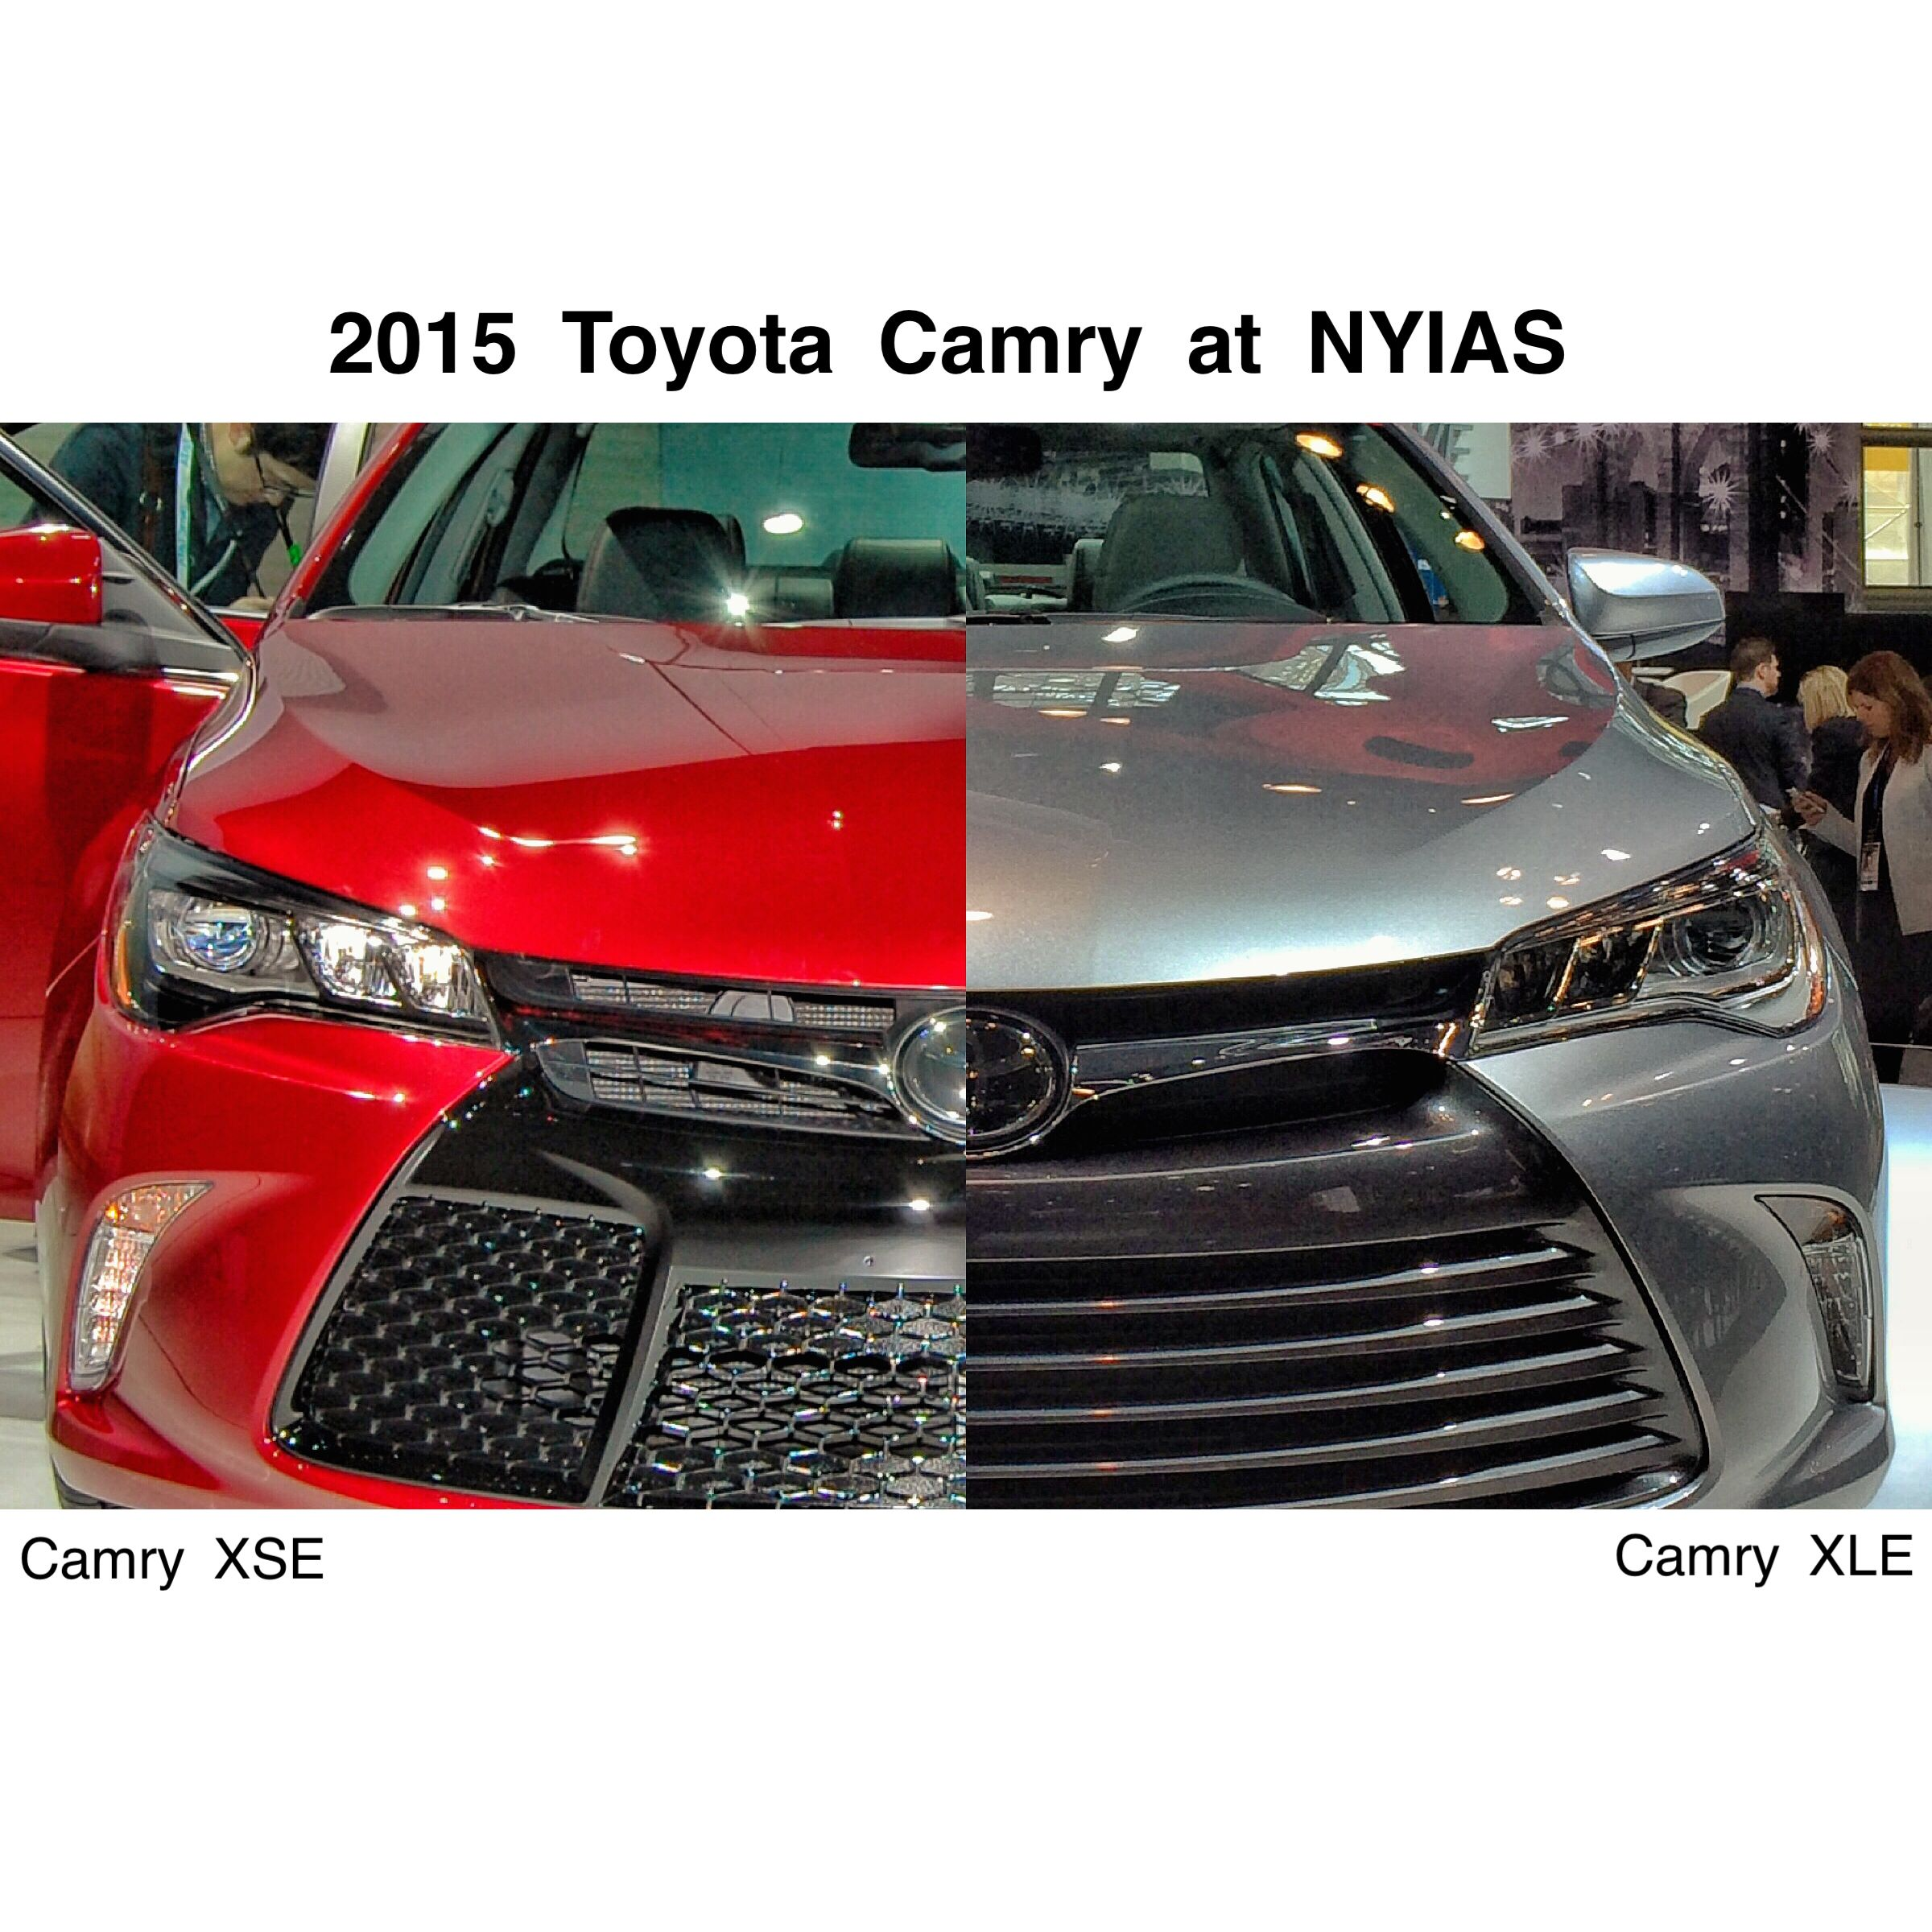 2015 toyota camry xse xle at nyias